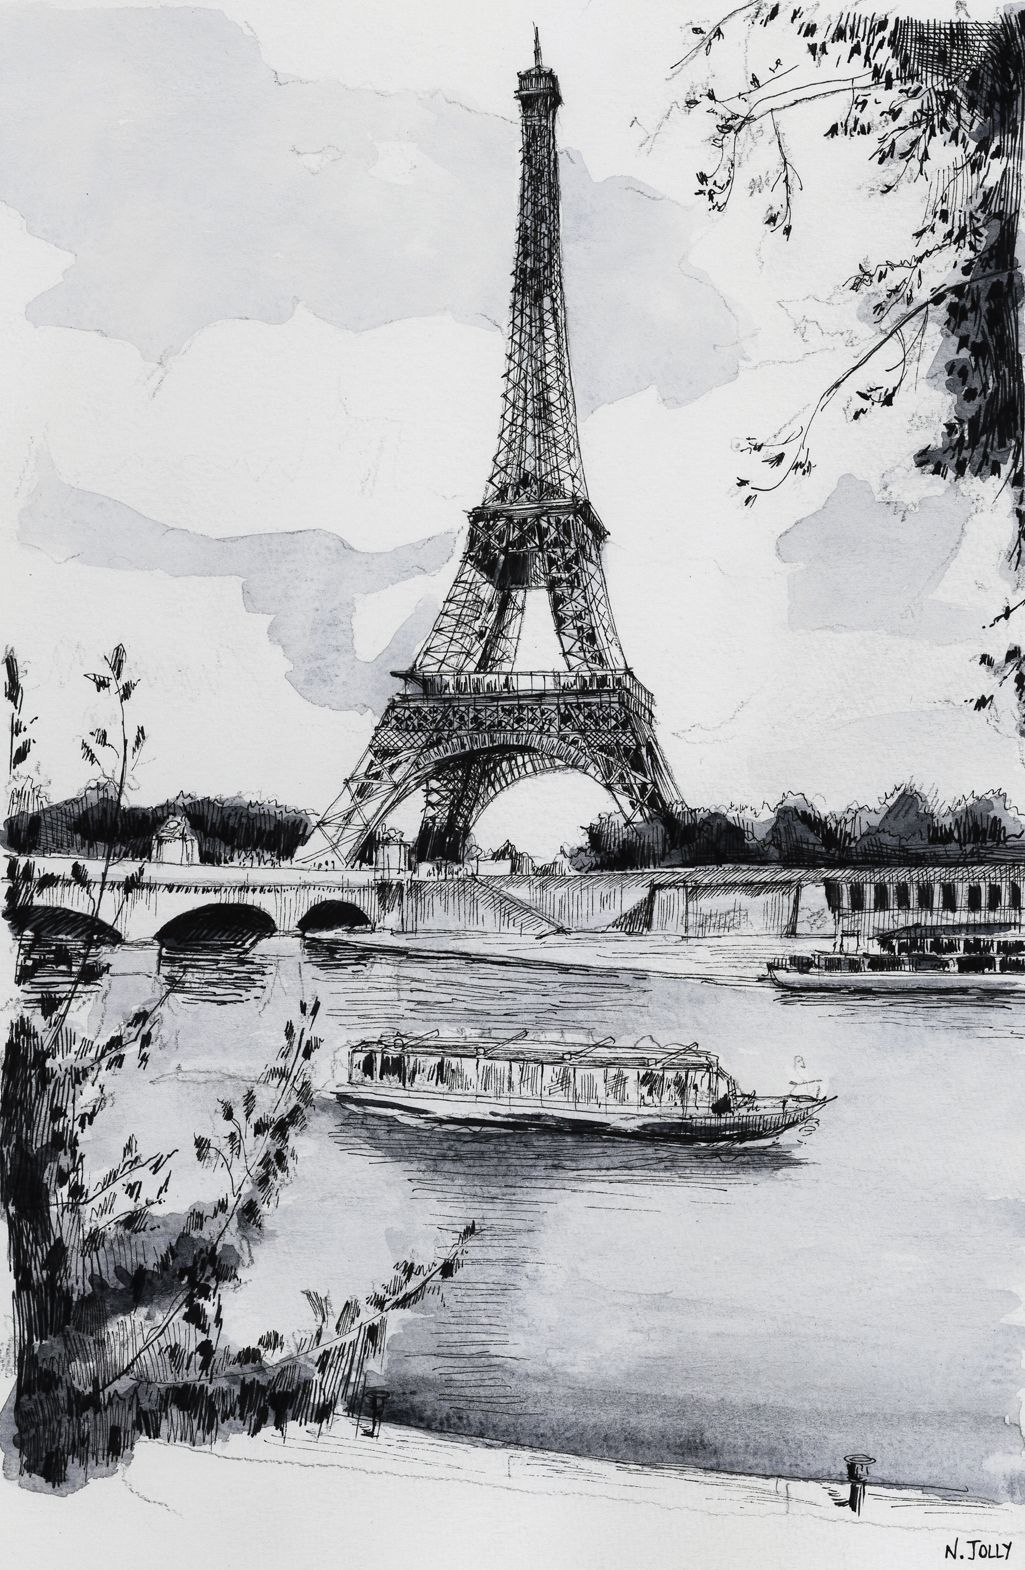 Watercolor / Aquarelle – La Seine et la Tour Eiffel